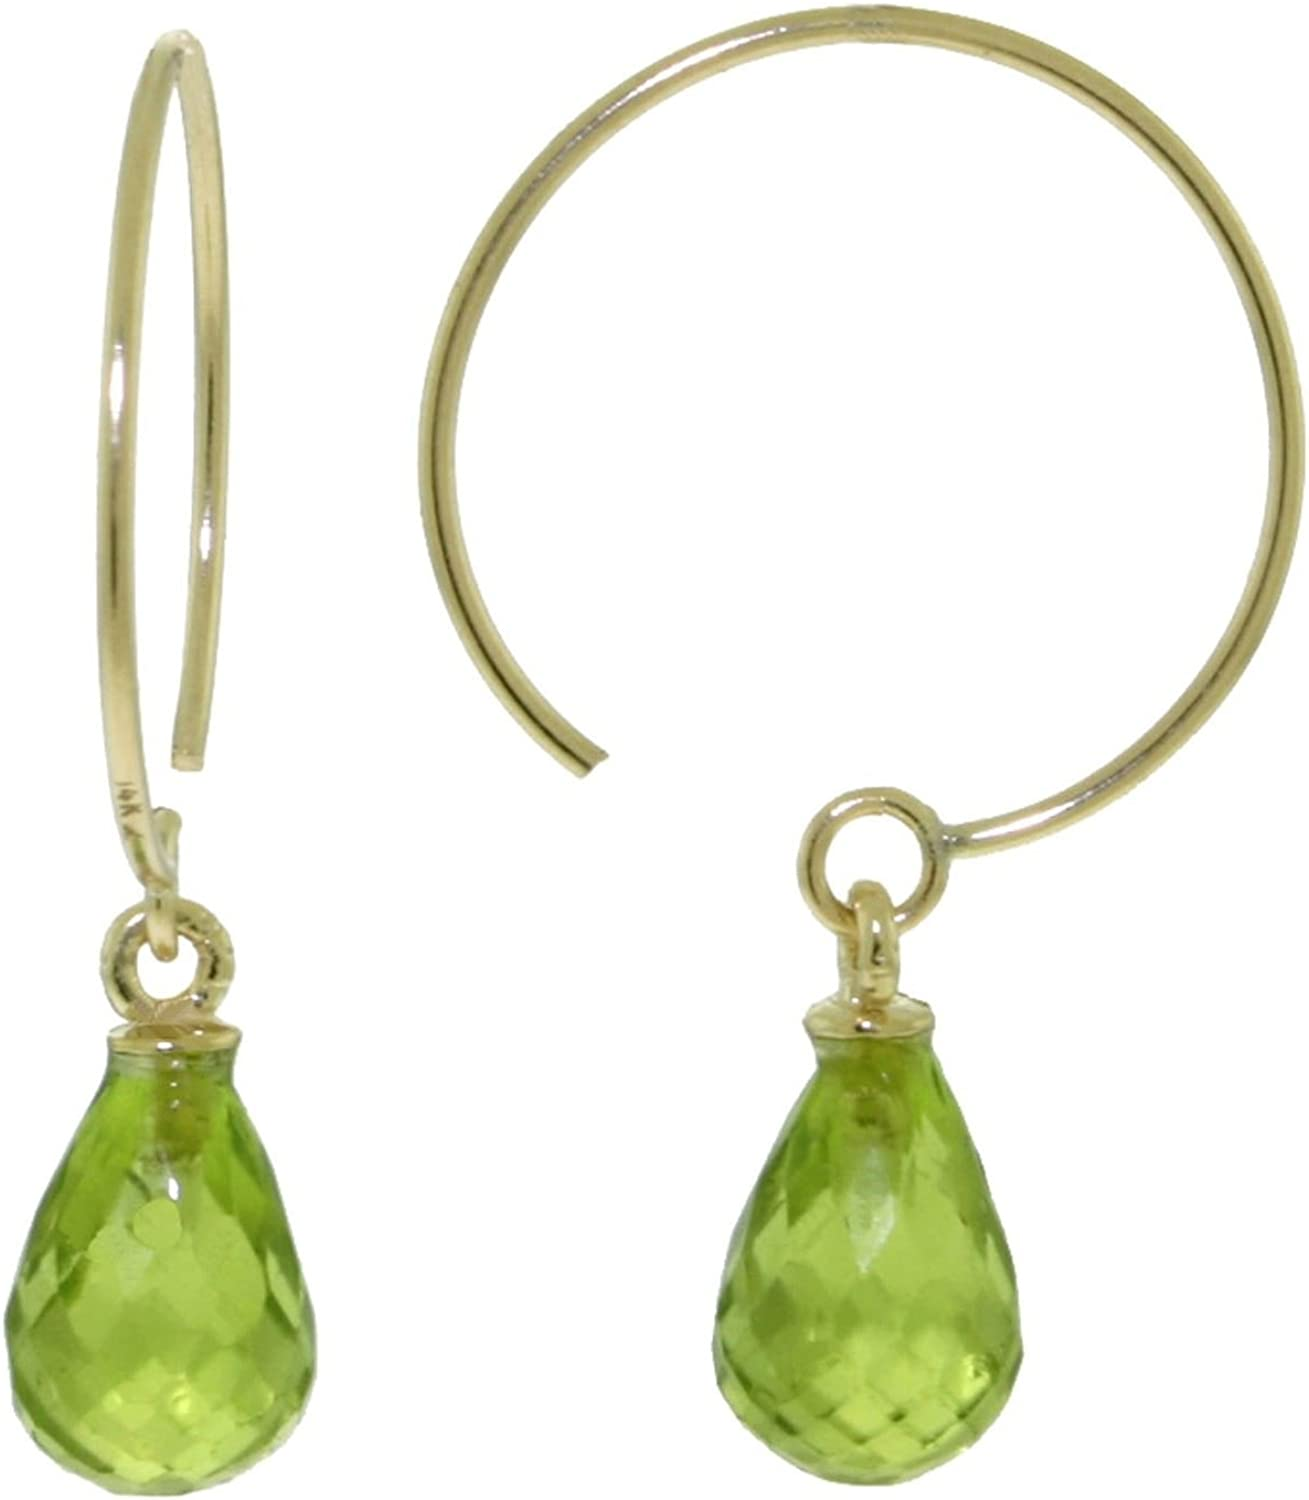 ALARRI 1.35 Carat 14K Solid Gold Circle Wire Earrings Peridot